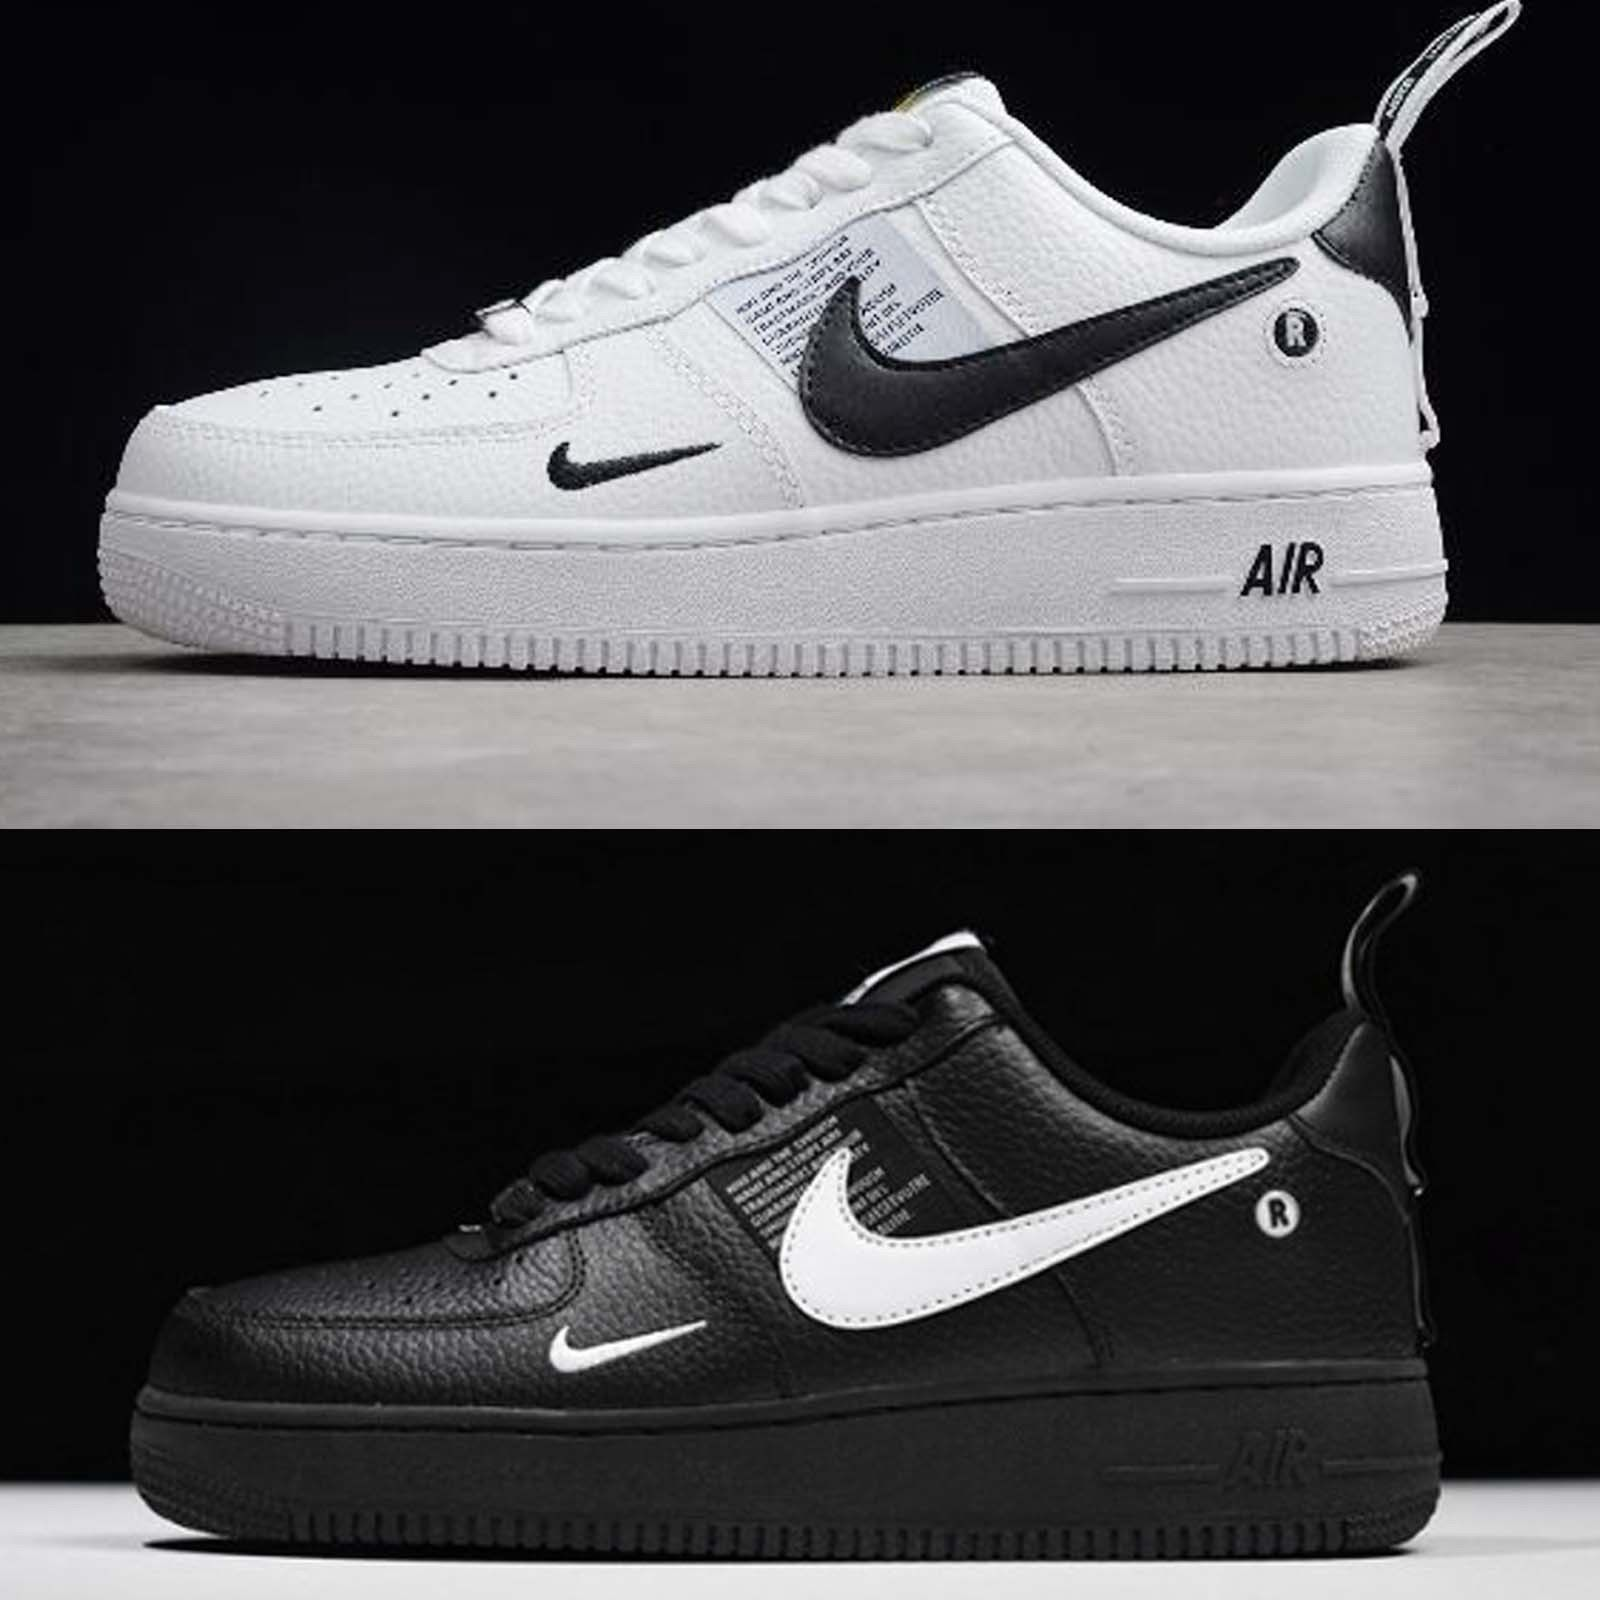 new arrival c6ad6 4f983 Nike Air Force 1 07 LV8 utility back and white